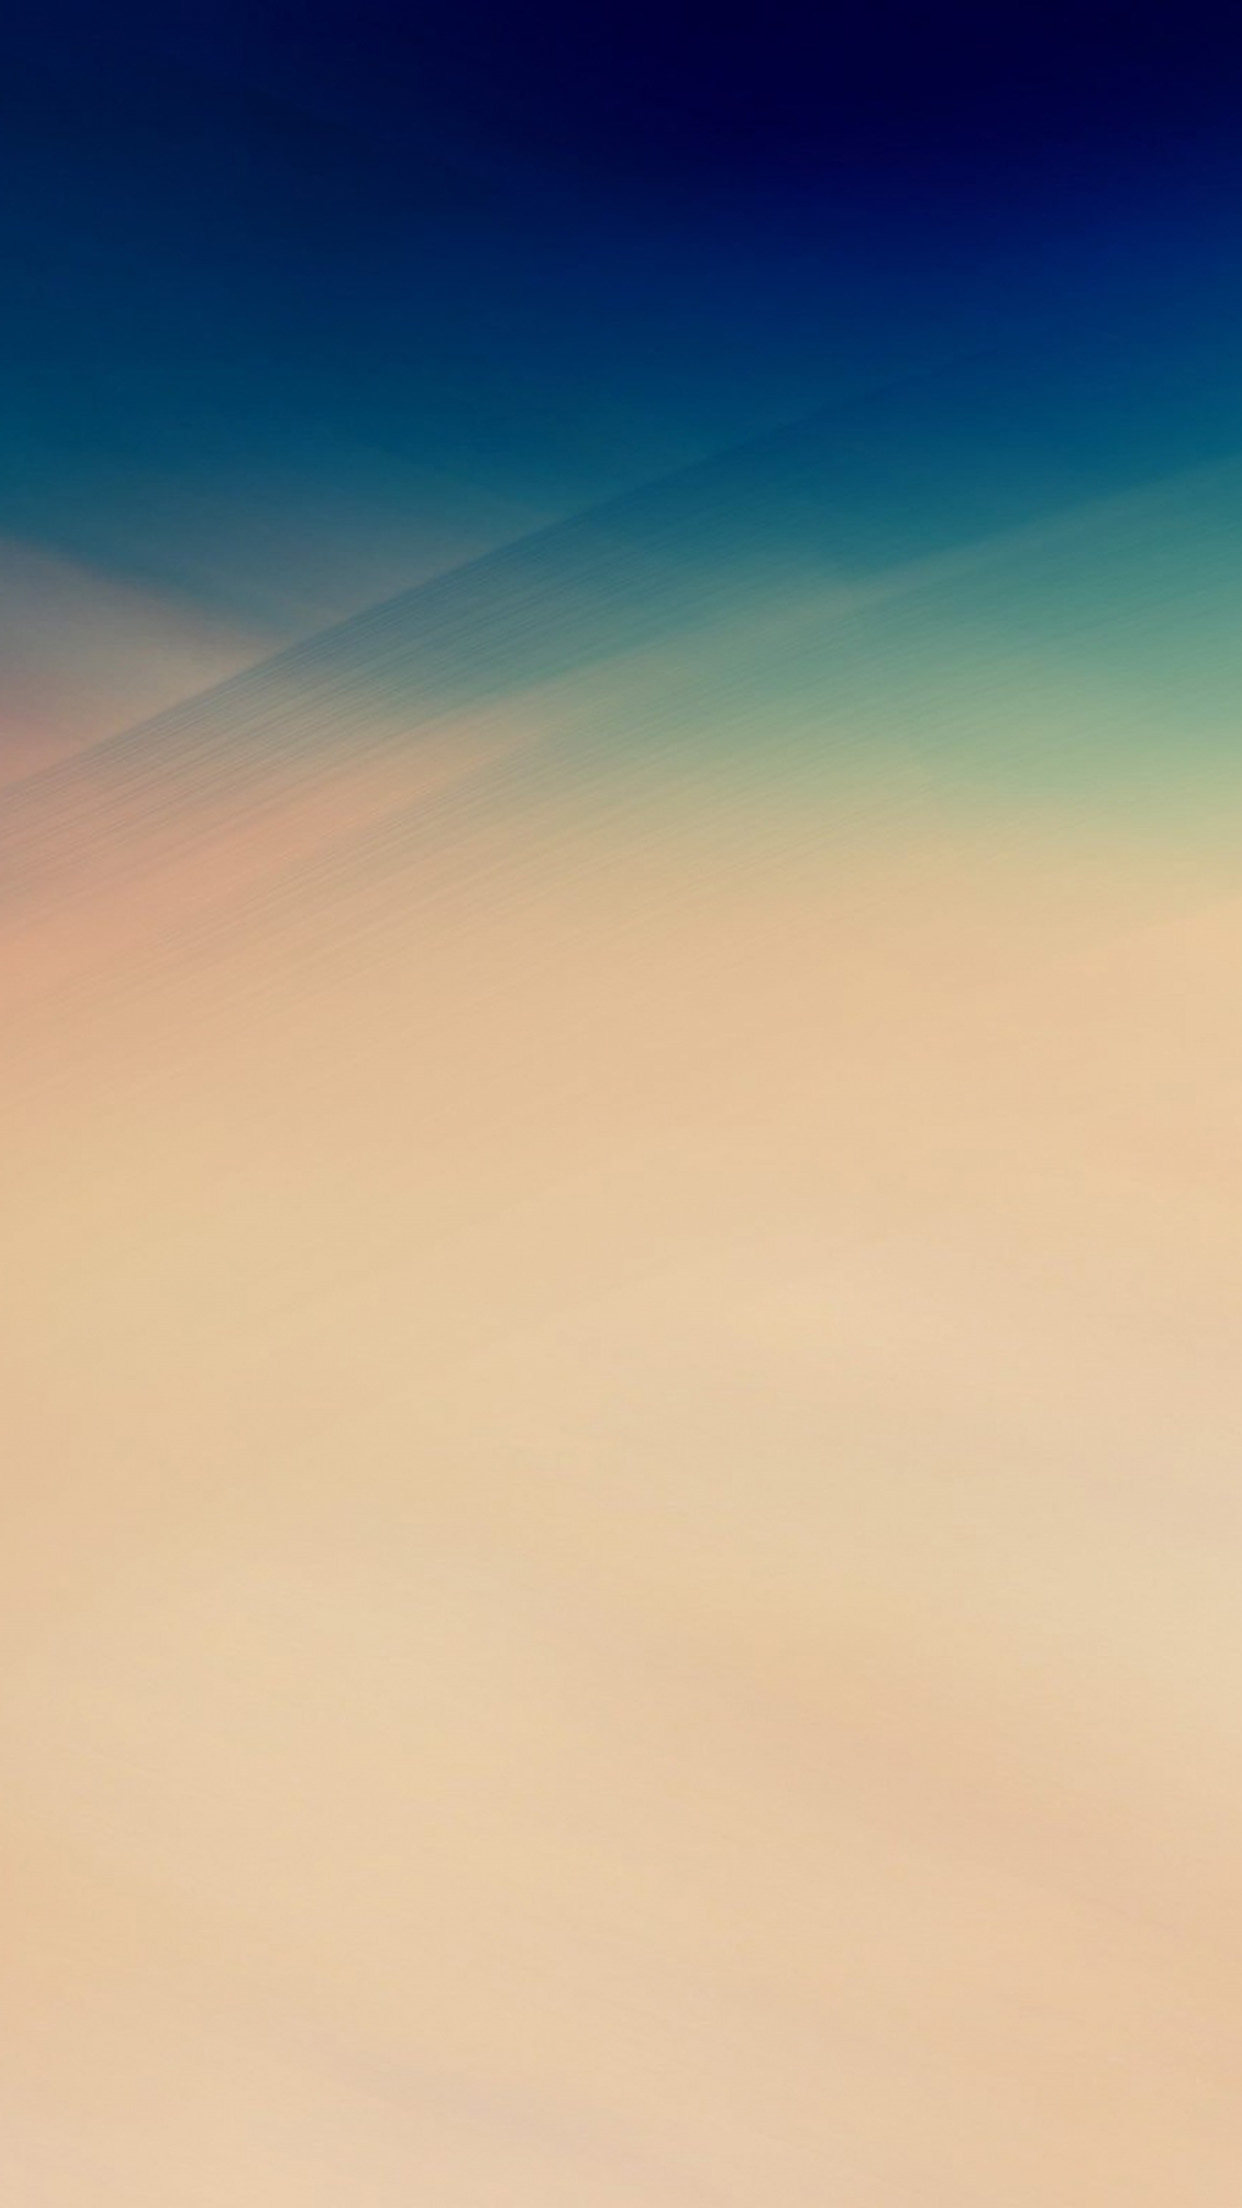 Soft Gradation Abstract Blue Yellow Pattern Android wallpaper